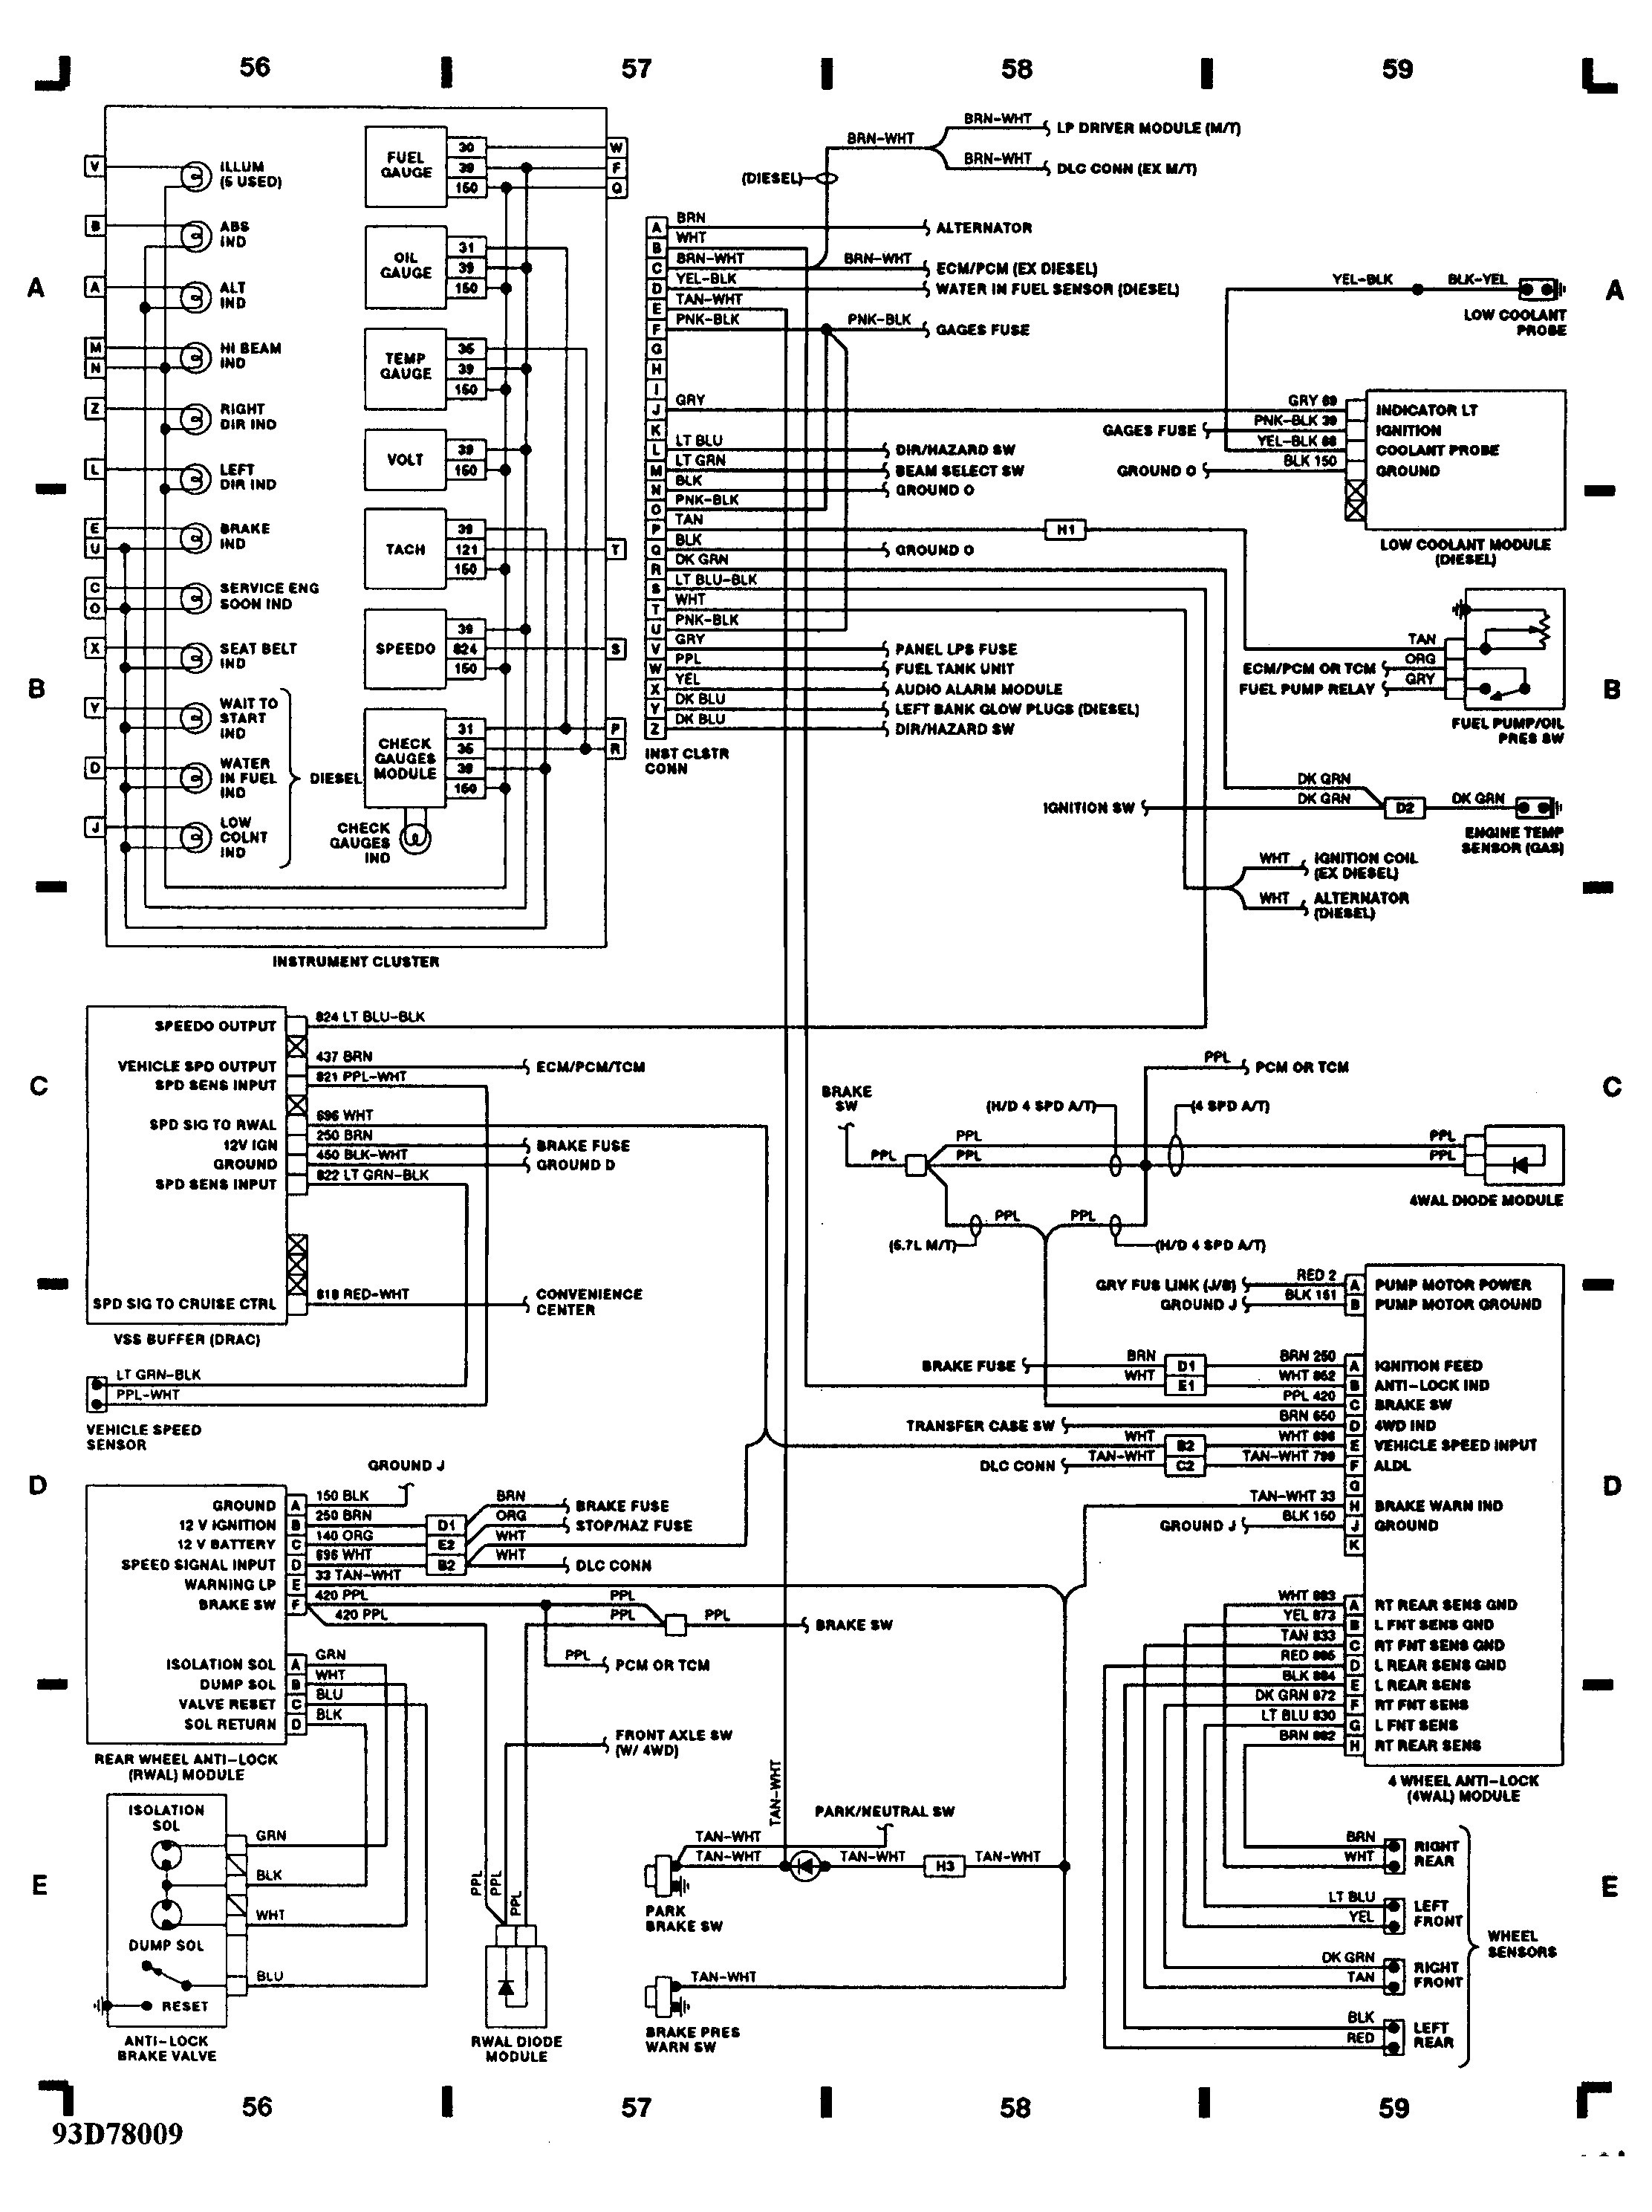 Chevy Truck Wiring Diagram 1993 Silverado Beautiful I Have A 93 Of